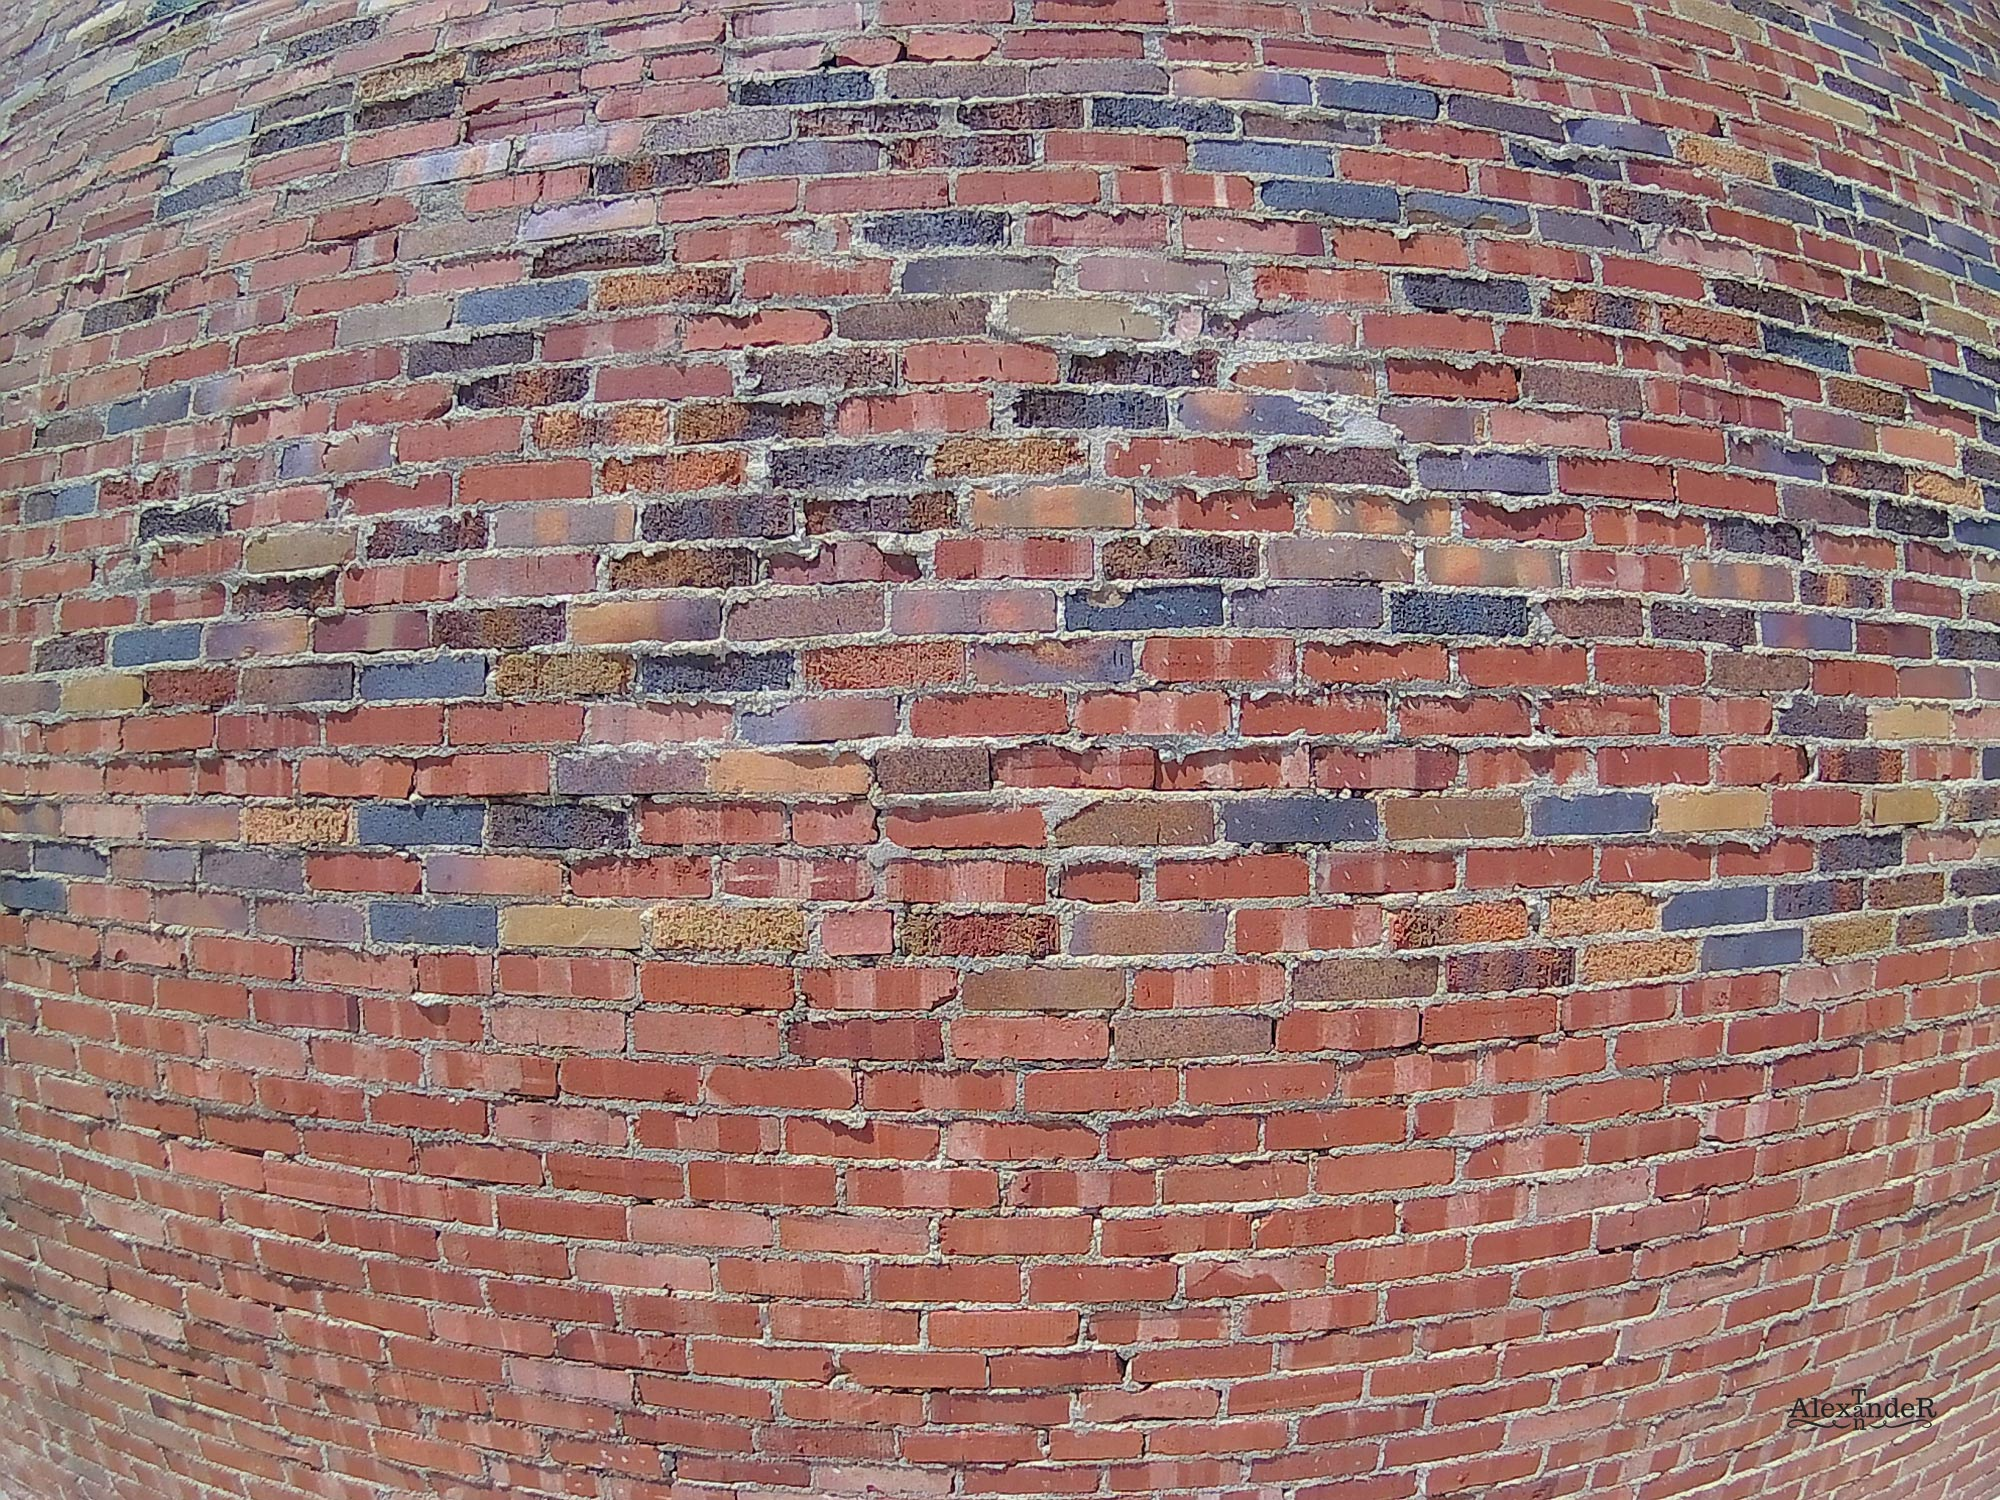 Brick Wall to Show Barrel distortion